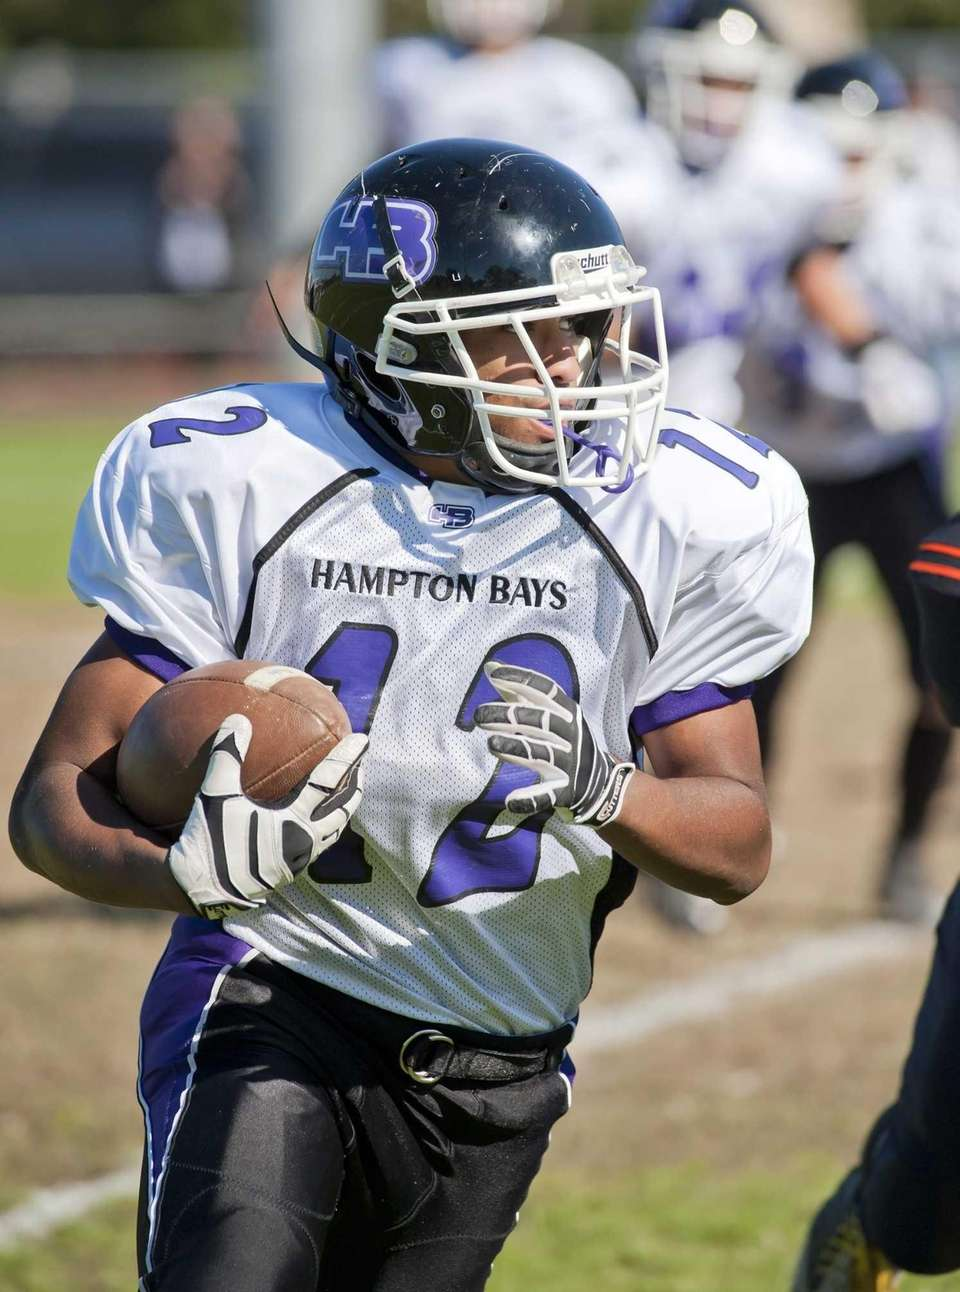 Hampton Bays's Tracey Kennedy looks for yardage. (Oct.